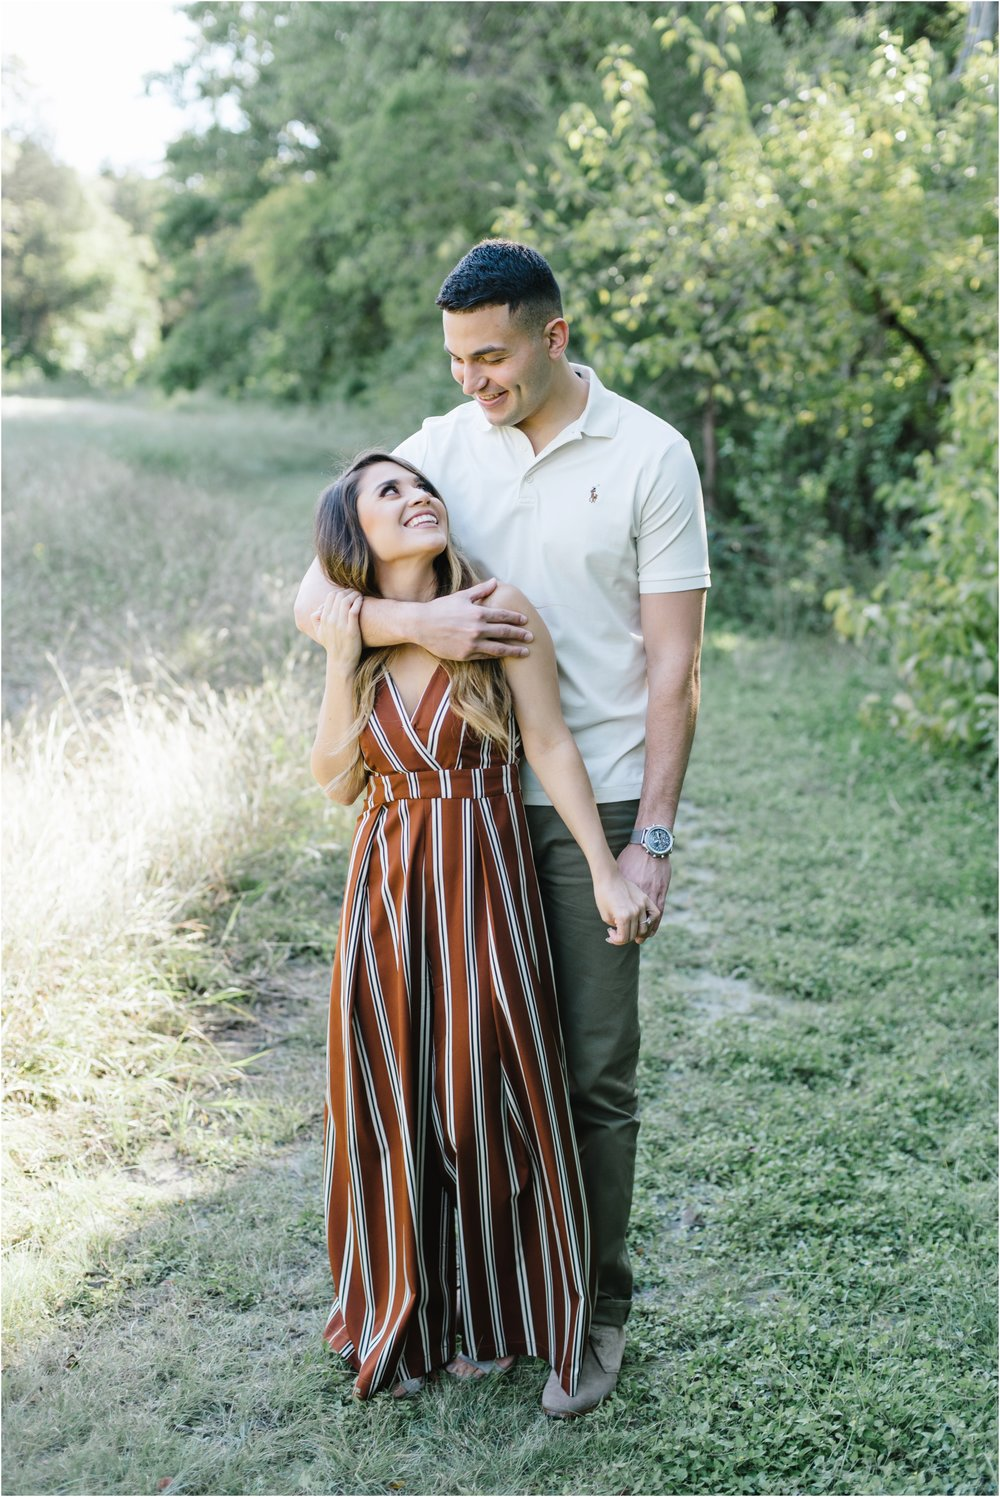 dallasweddingphotographer_Ashley+Adrian_WhiteRockLakeEngagement_0002.jpg